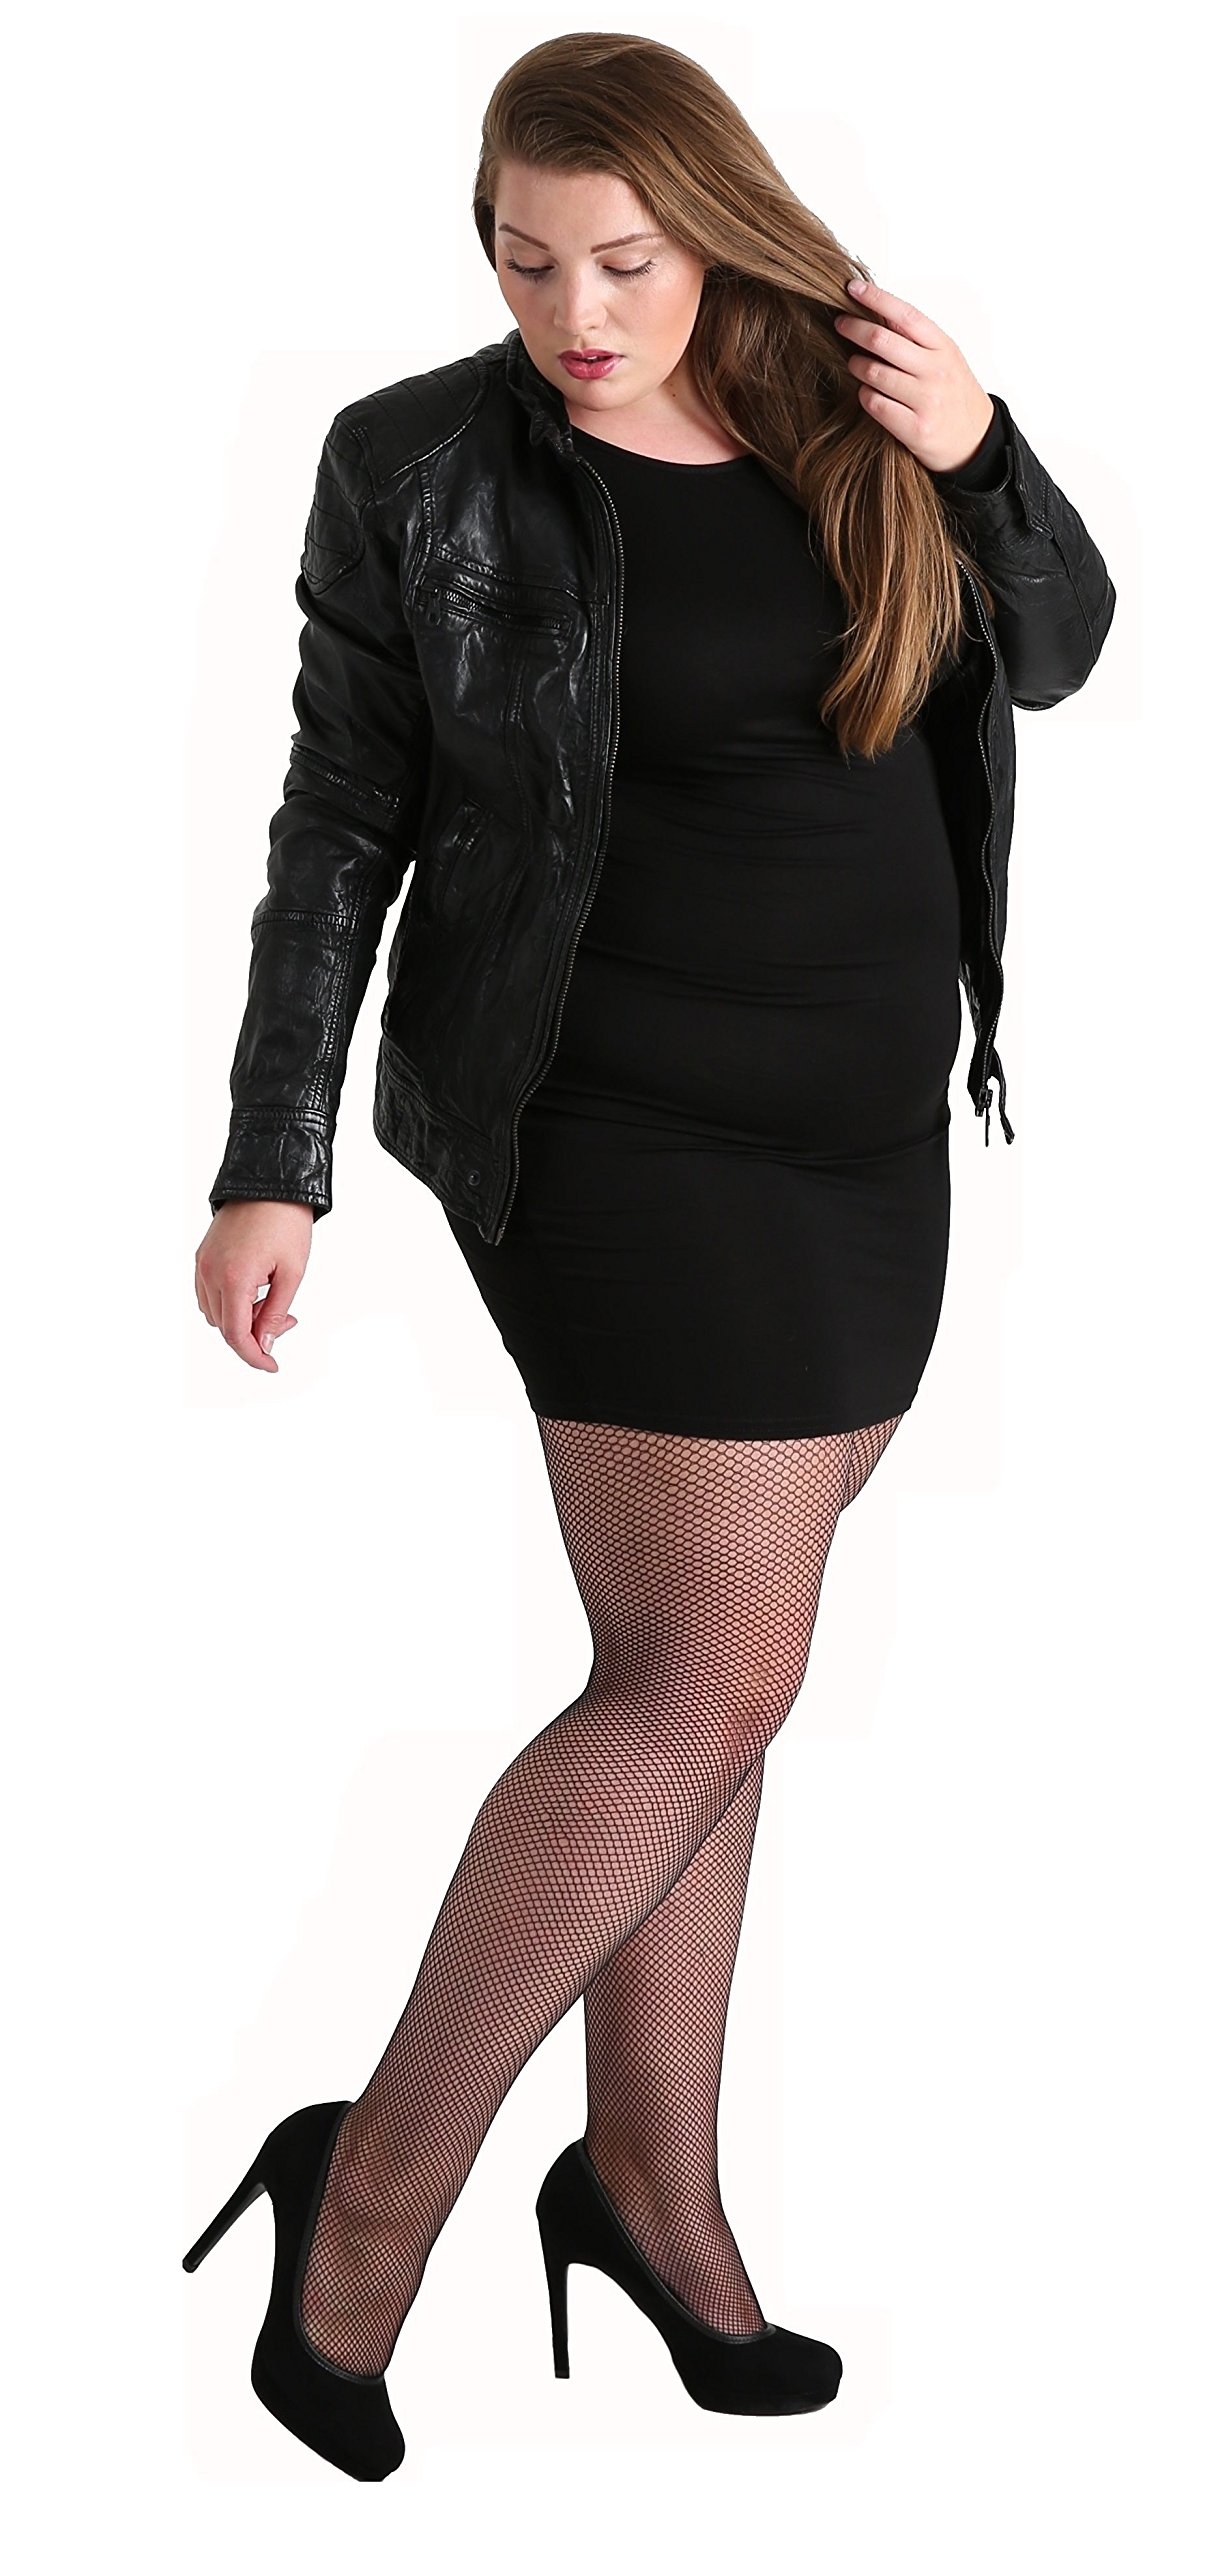 Plus Size Luxury Fishnet Tights Black. Special Pantyhose Lingerie for Large Sizes [Made in Italy] (24-28)